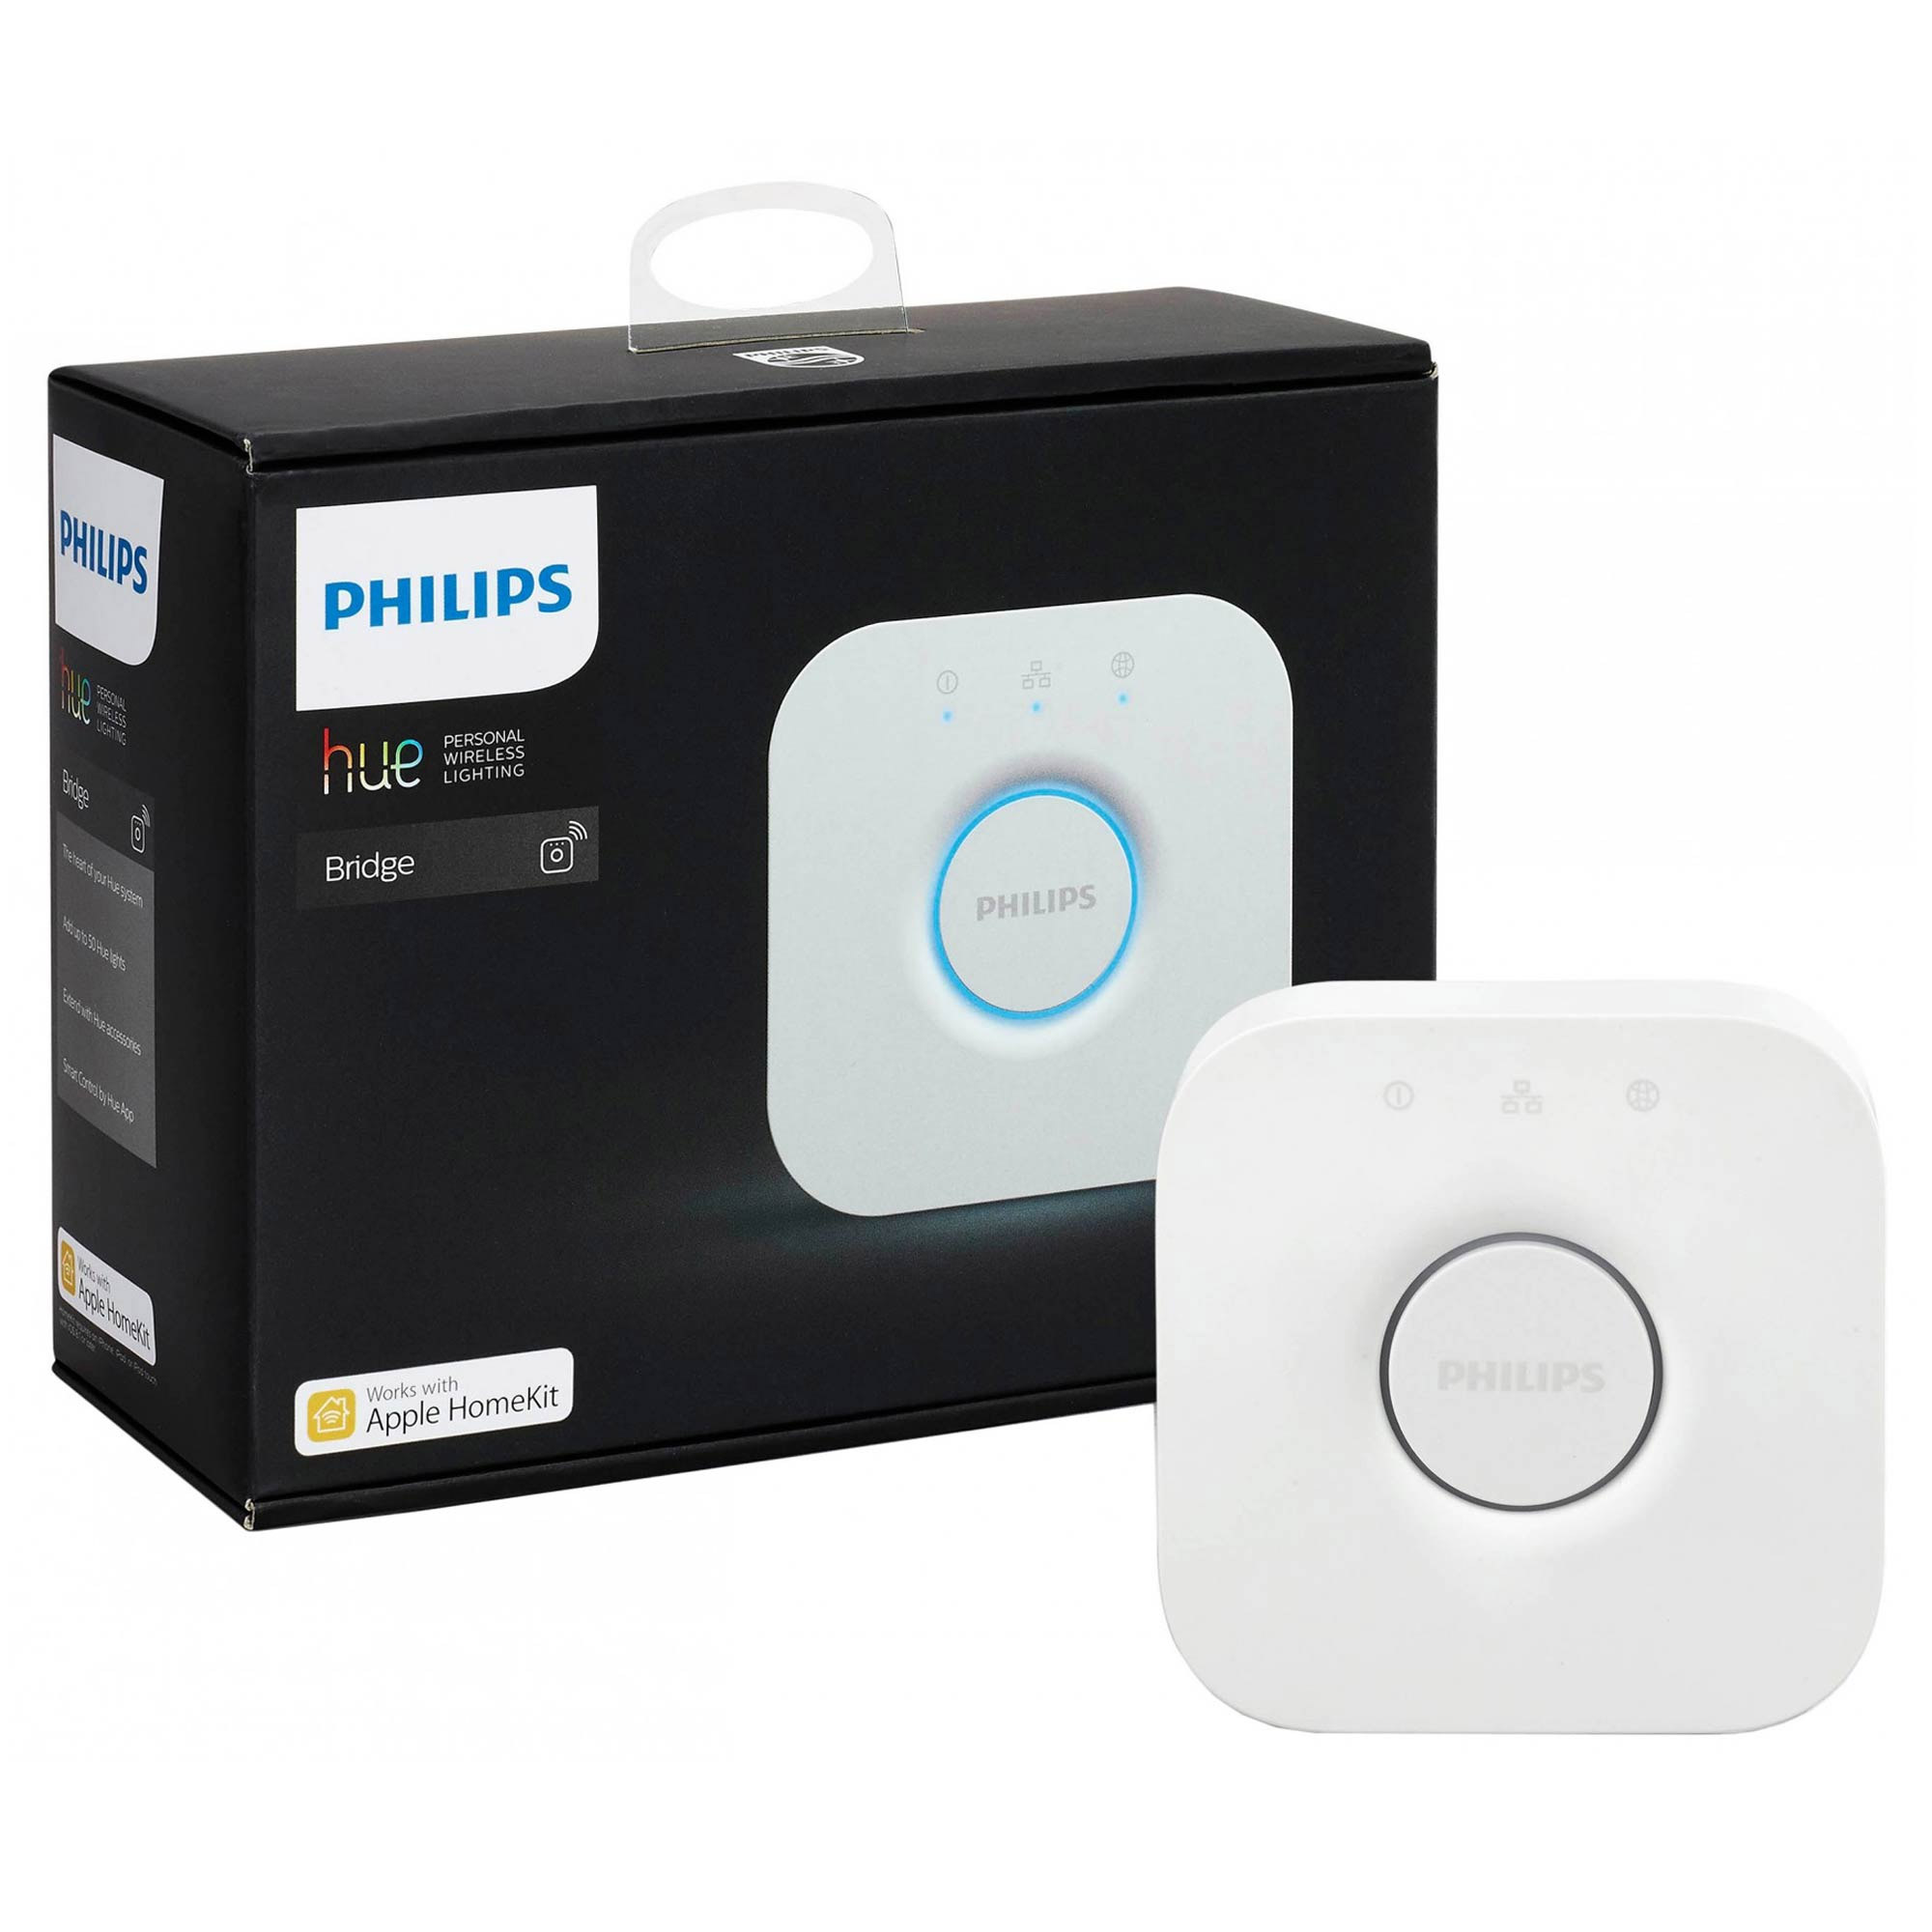 philips hue 929001180606 philips hue bridge hub. Black Bedroom Furniture Sets. Home Design Ideas